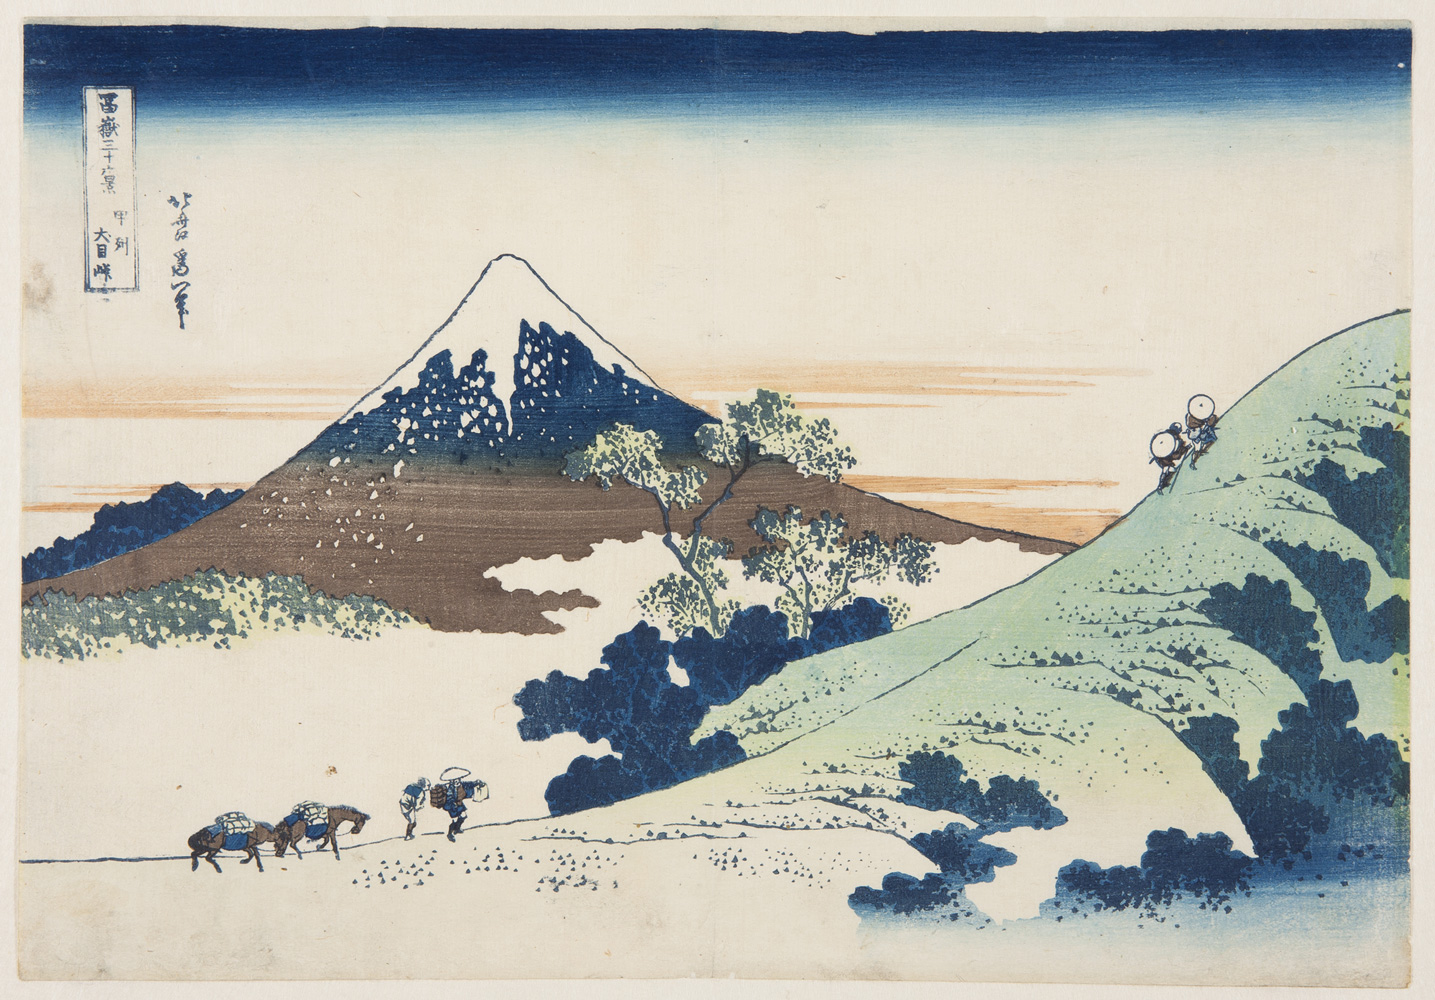 Japanese print of Inume Pass in Kai Province. Travellers with horses climb the hill in the foreground. Mount Fuji rises up in the background.